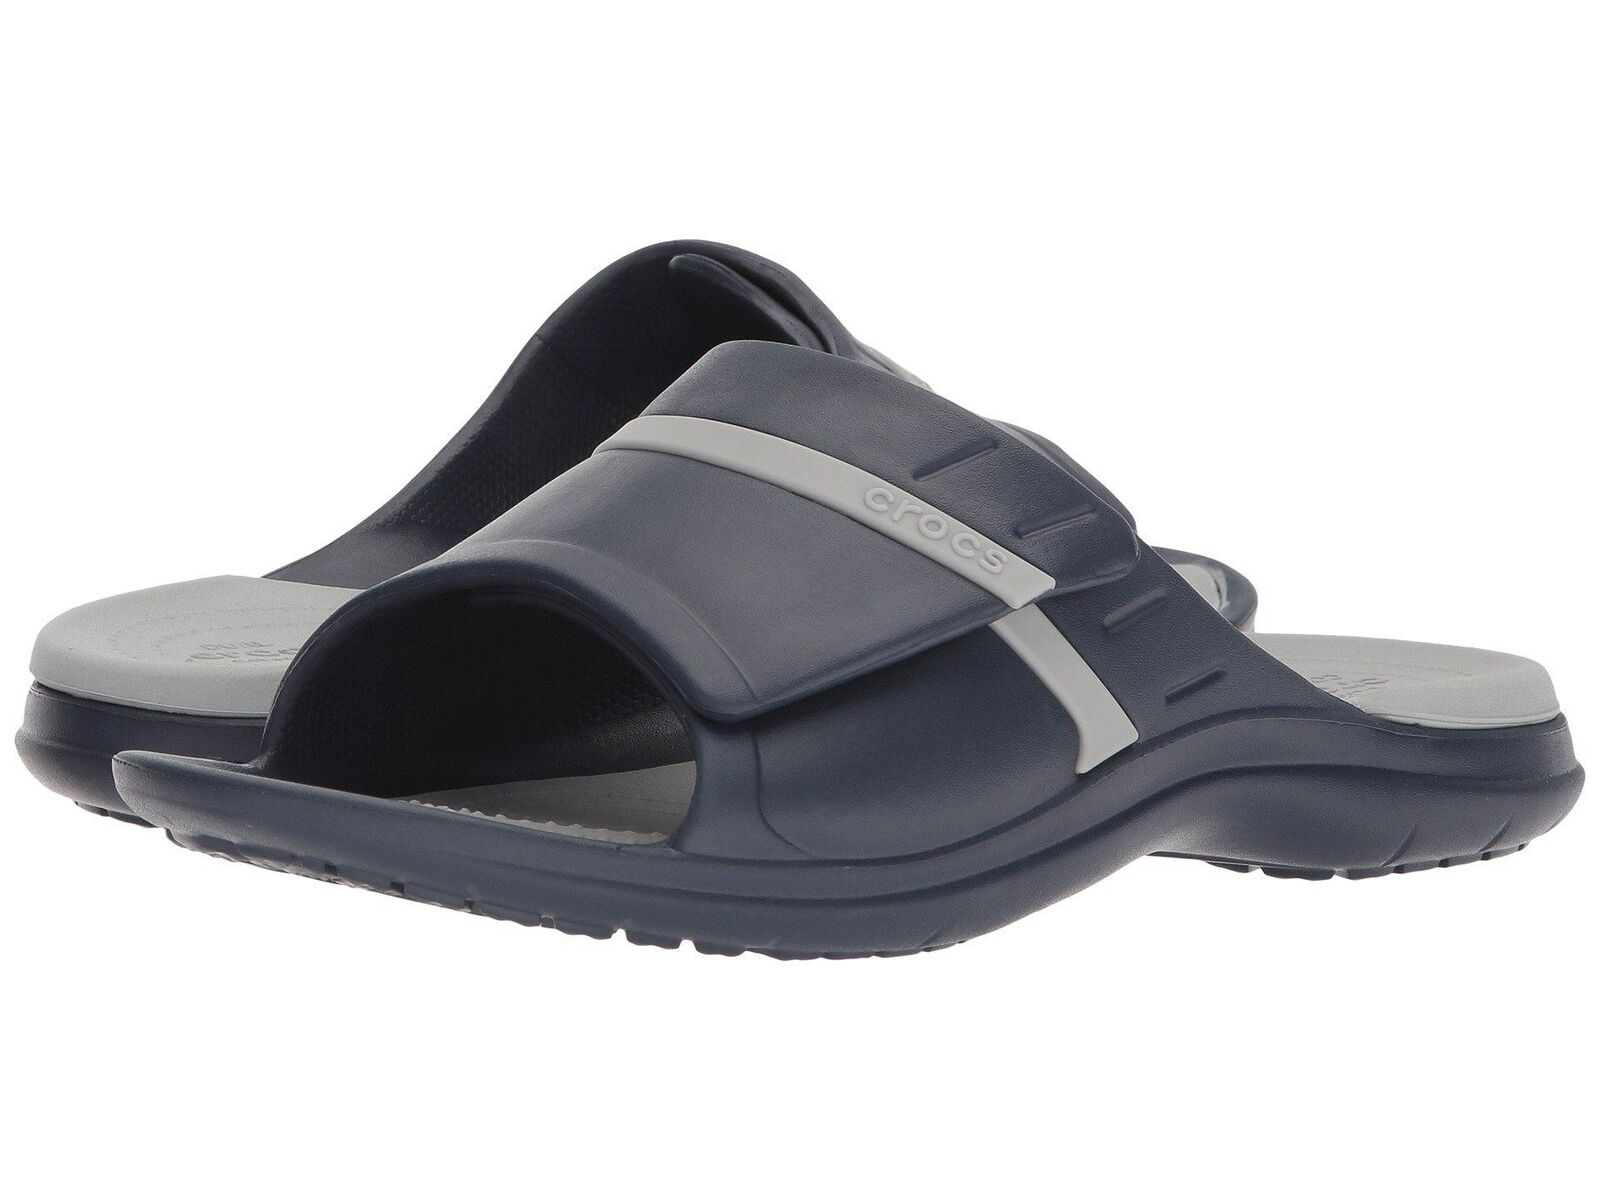 2530e08d4df5 Crocs Crocs Crocs MODI Sport Slide Navy   Light Gray 204144-41S Men s Sandal  594589